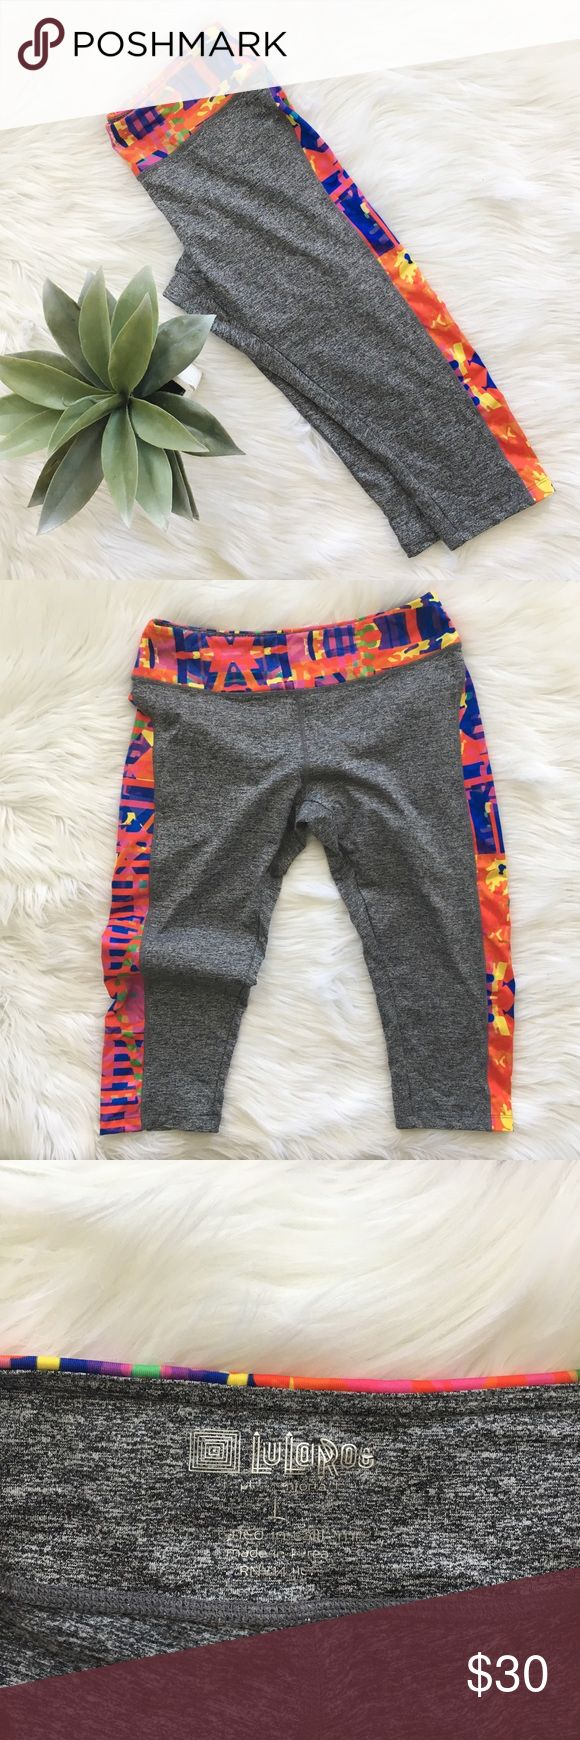 """Lularoe Jade Athletic Cropped Workout Legging Lularoe """"jade"""" cropped athletic legging size large. Colorful abstract print on the sides. Inseam 19 inches. No stains or holes, smoke and pet free home! Offers welcomed! LuLaRoe Pants Leggings"""